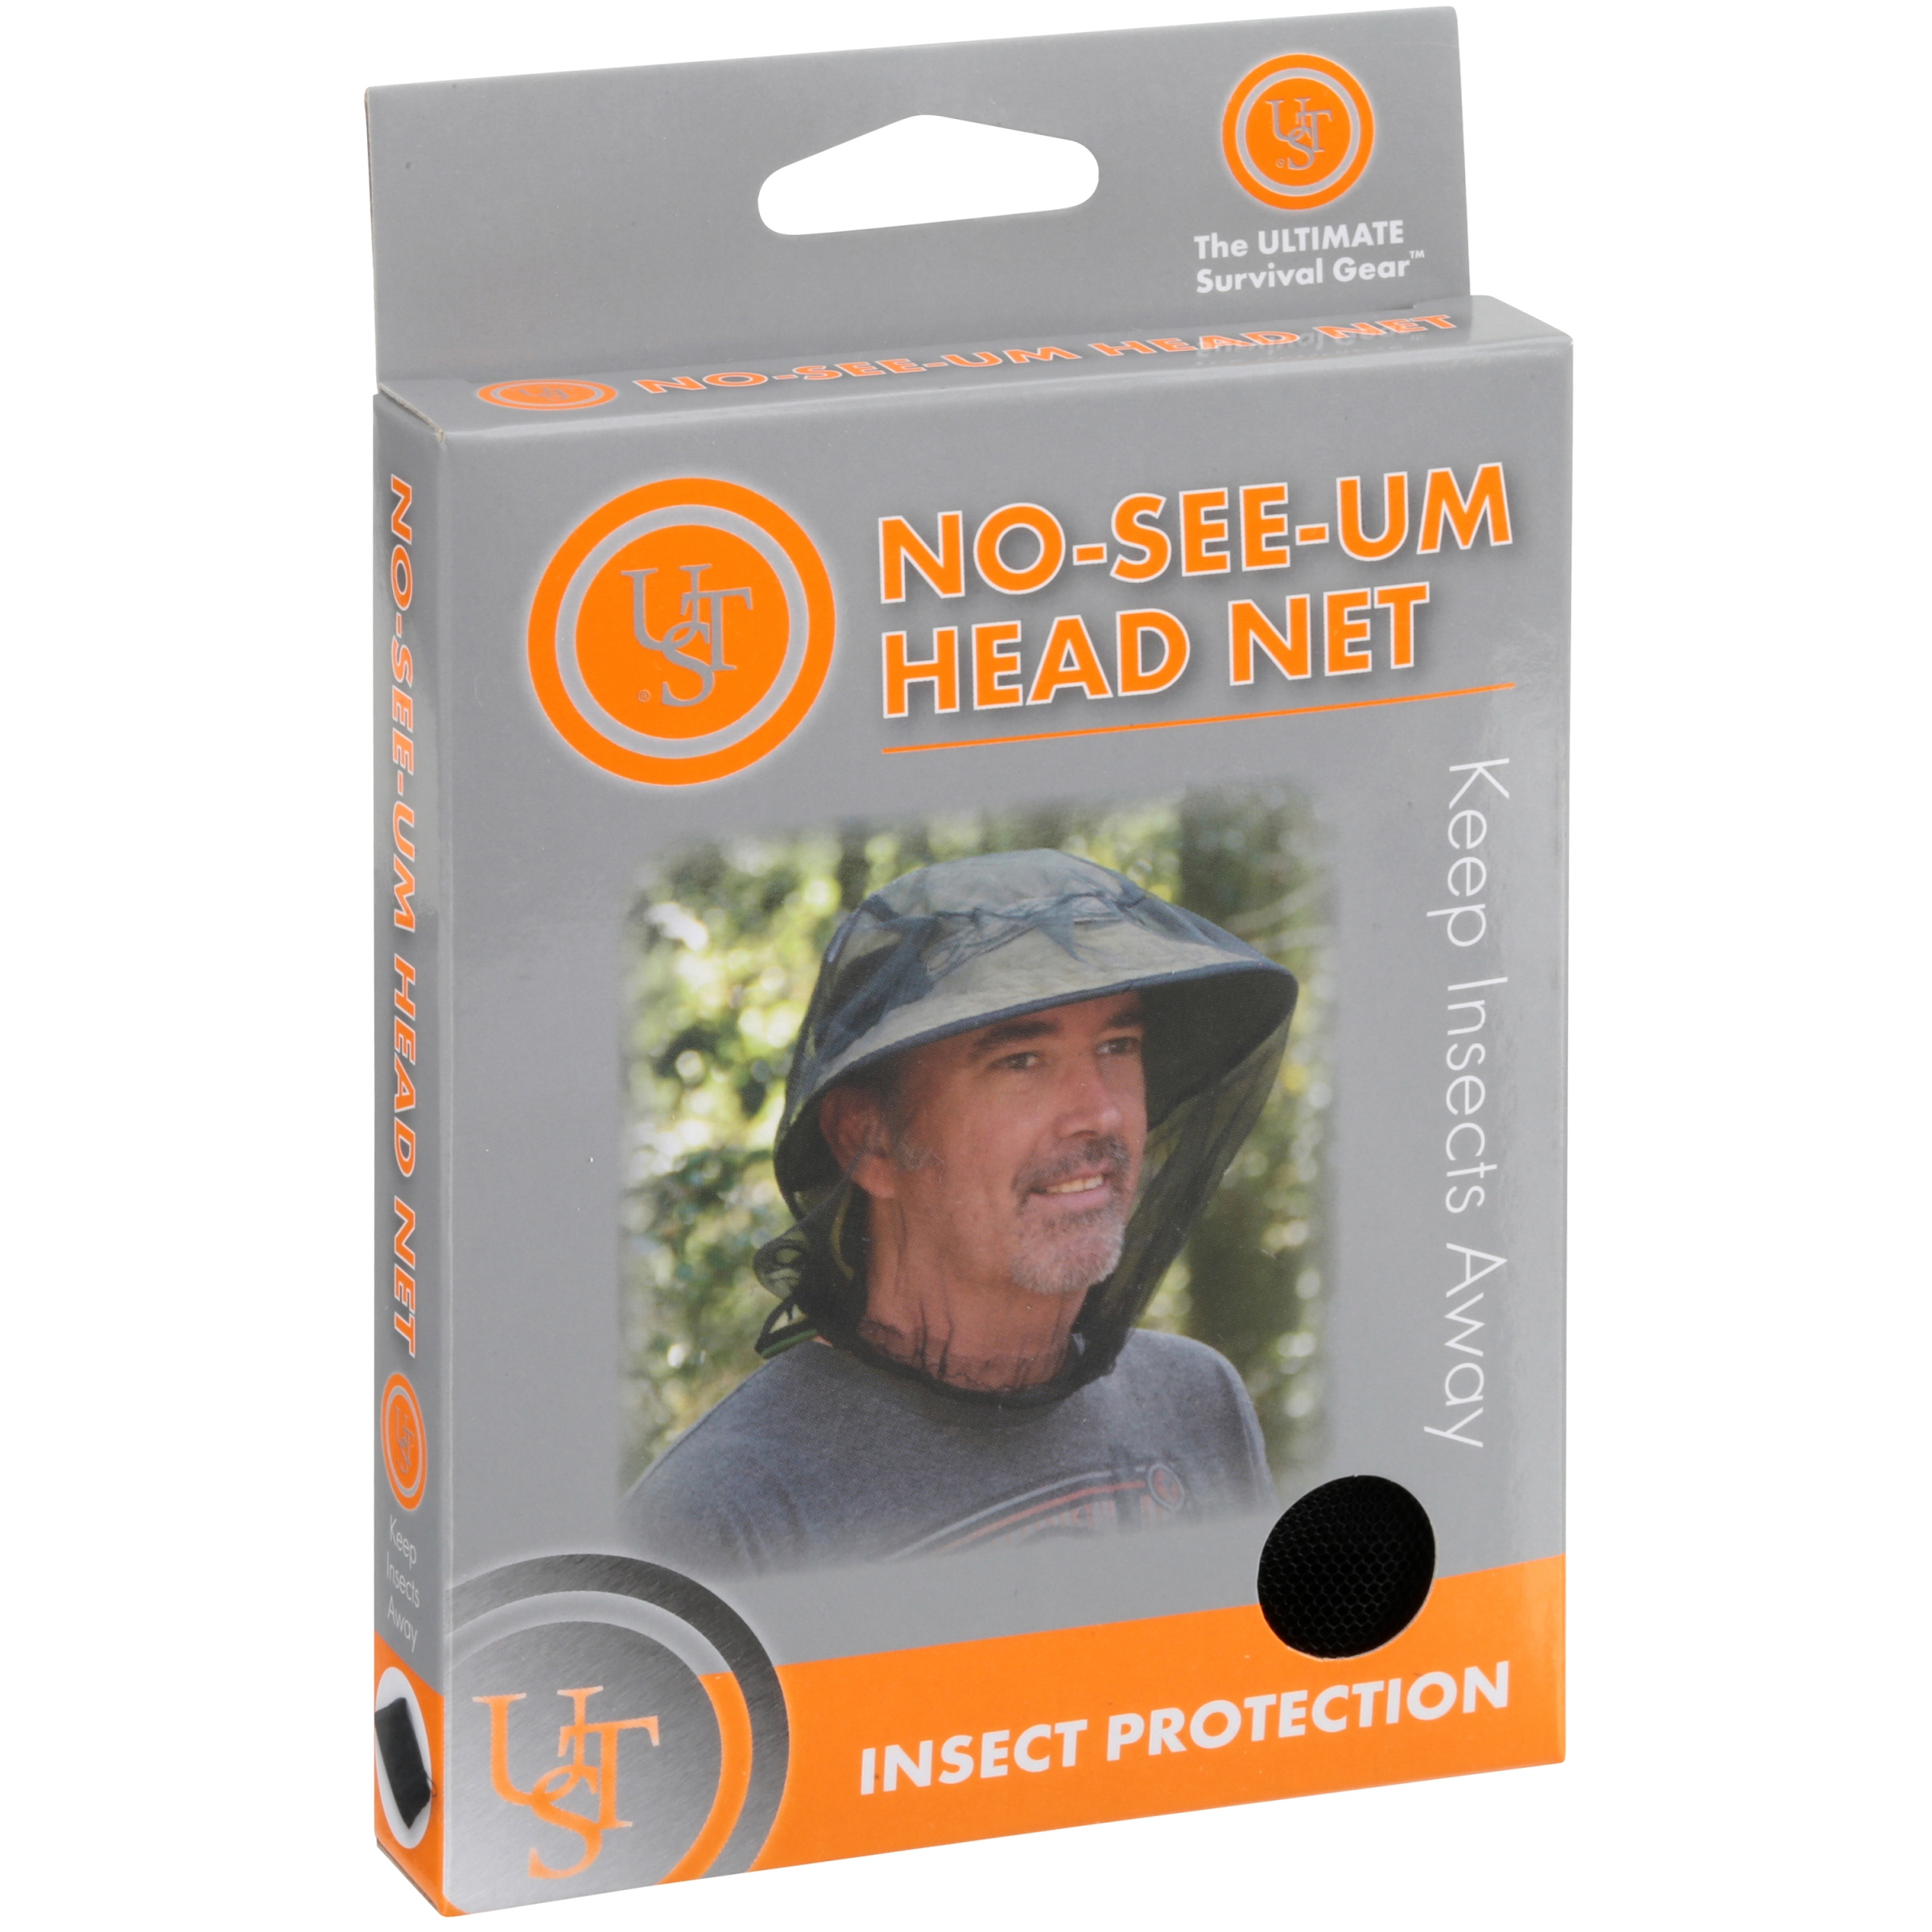 UST NO SEE UM LIGHTWEIGHT INSECT HEAD NET BUSHCRAFT CAMPING HIKING